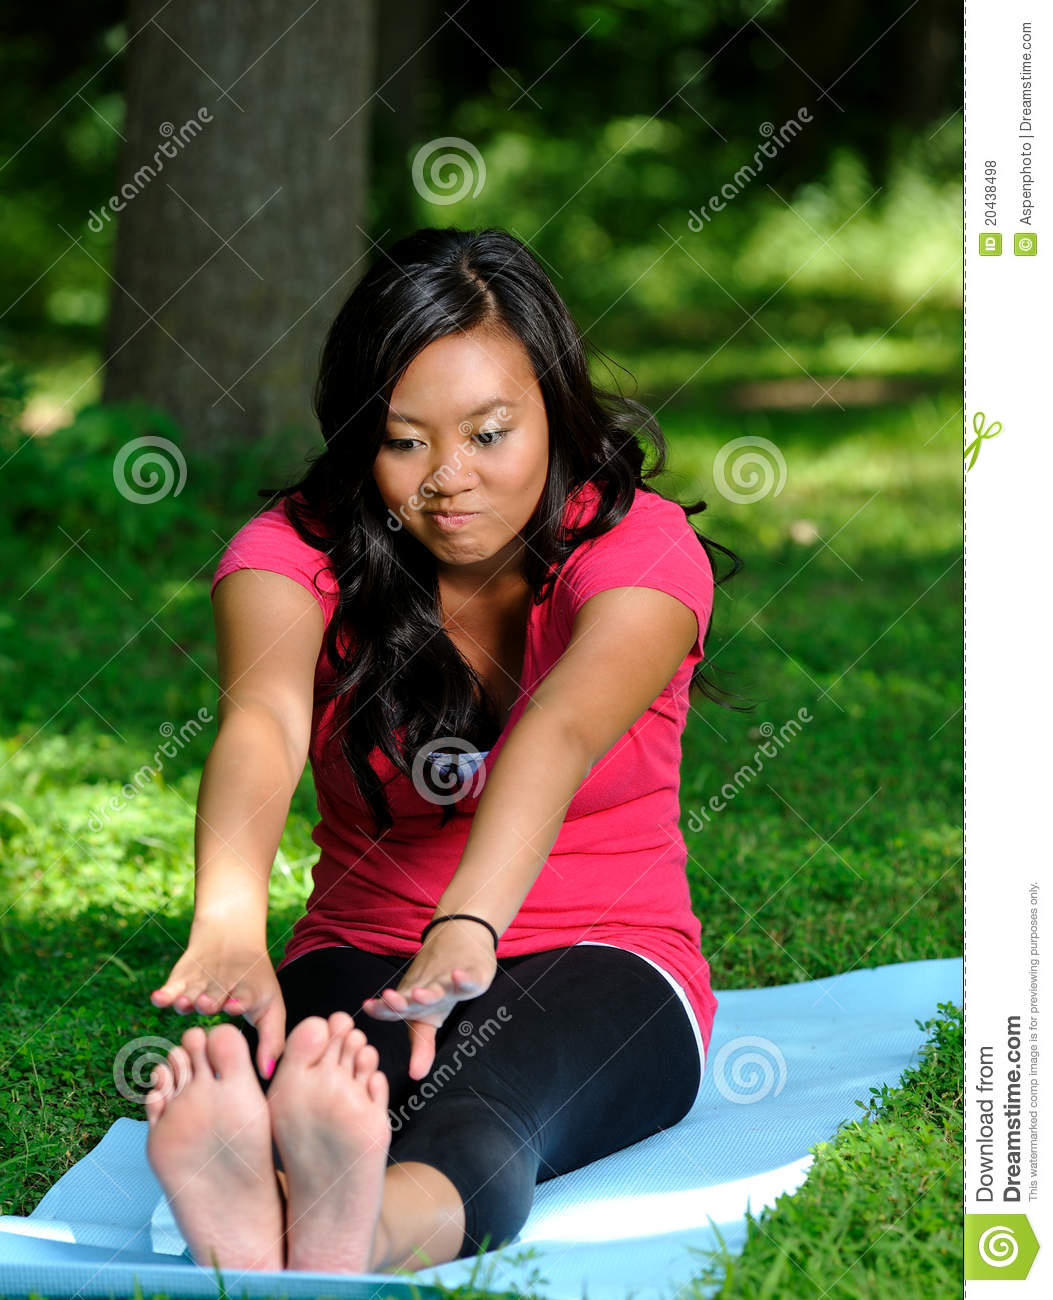 Pretty Asian Woman - Yoga In The Park Stock Photo - Image